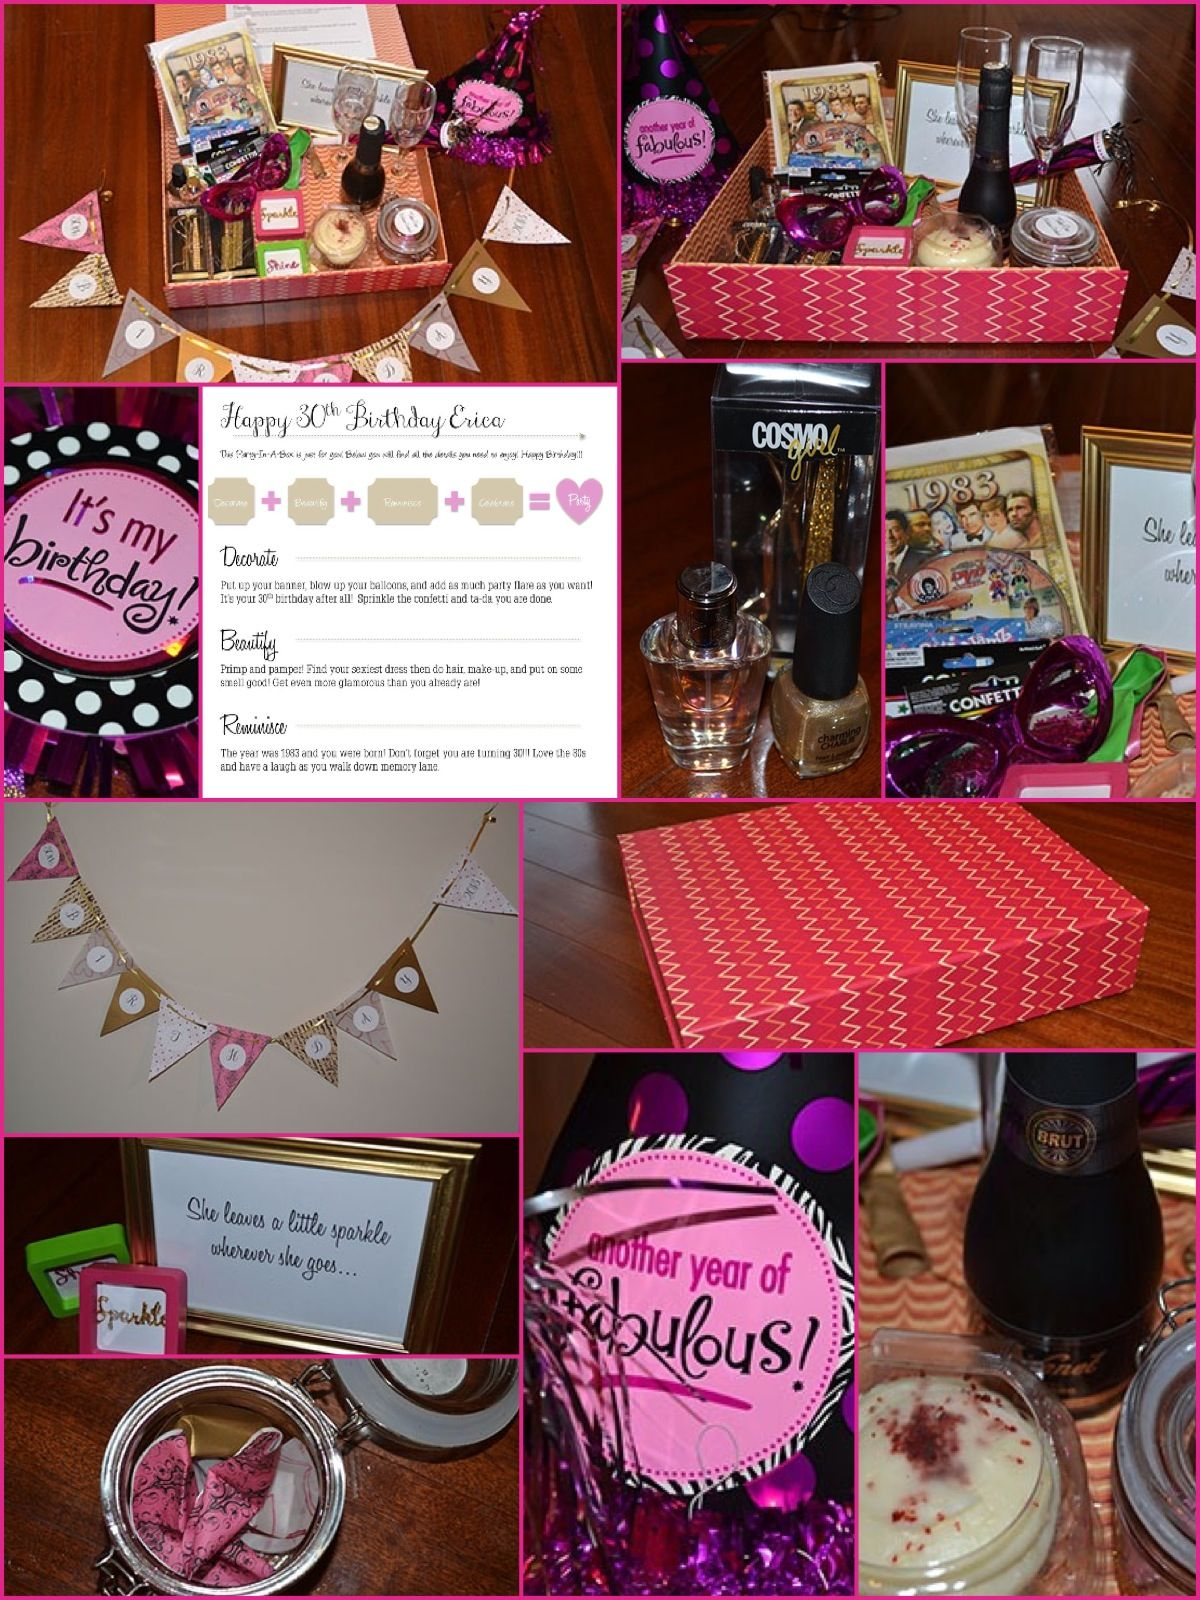 Party In A Box 30th Birthday Gift Idea For Those Far Away DIY